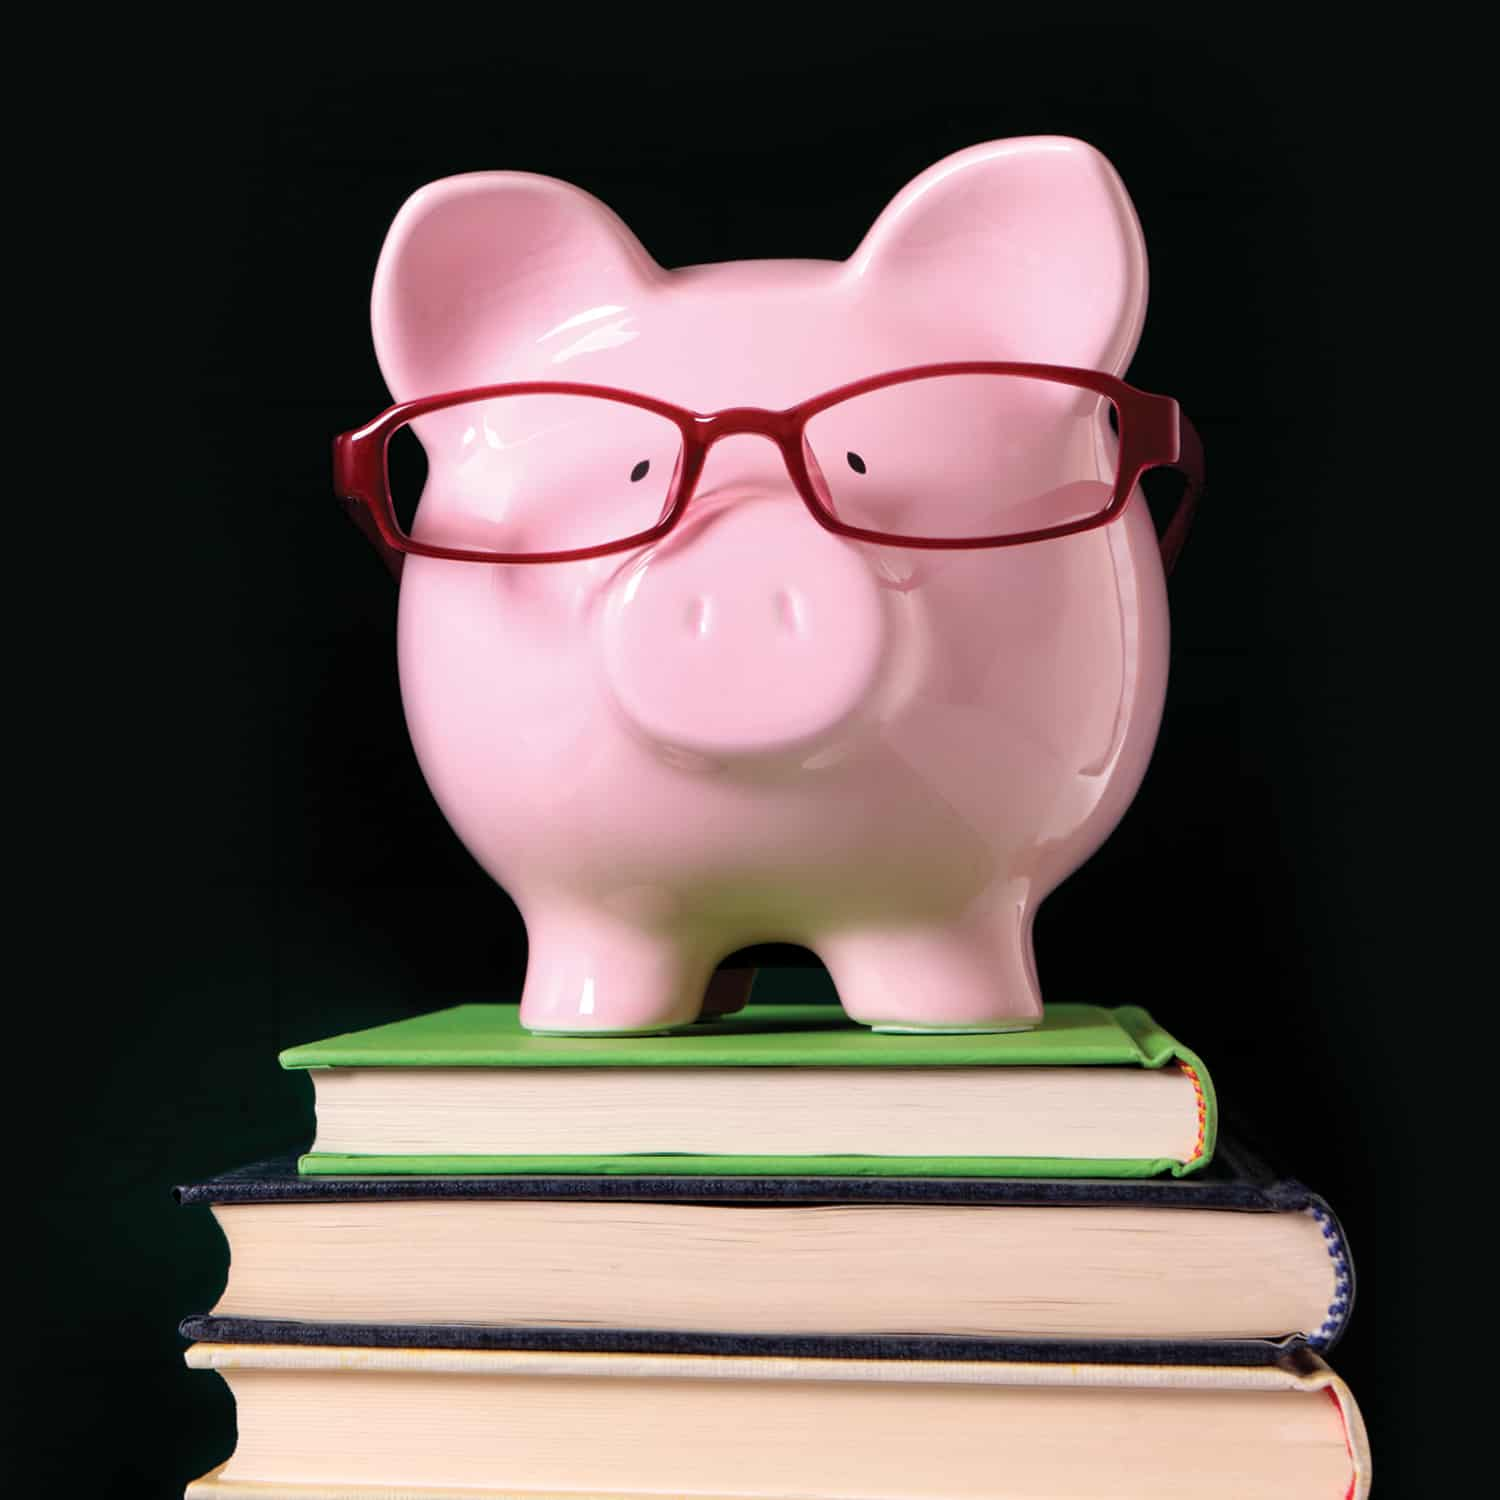 pink piggy bank wearing red glasses on stack of books